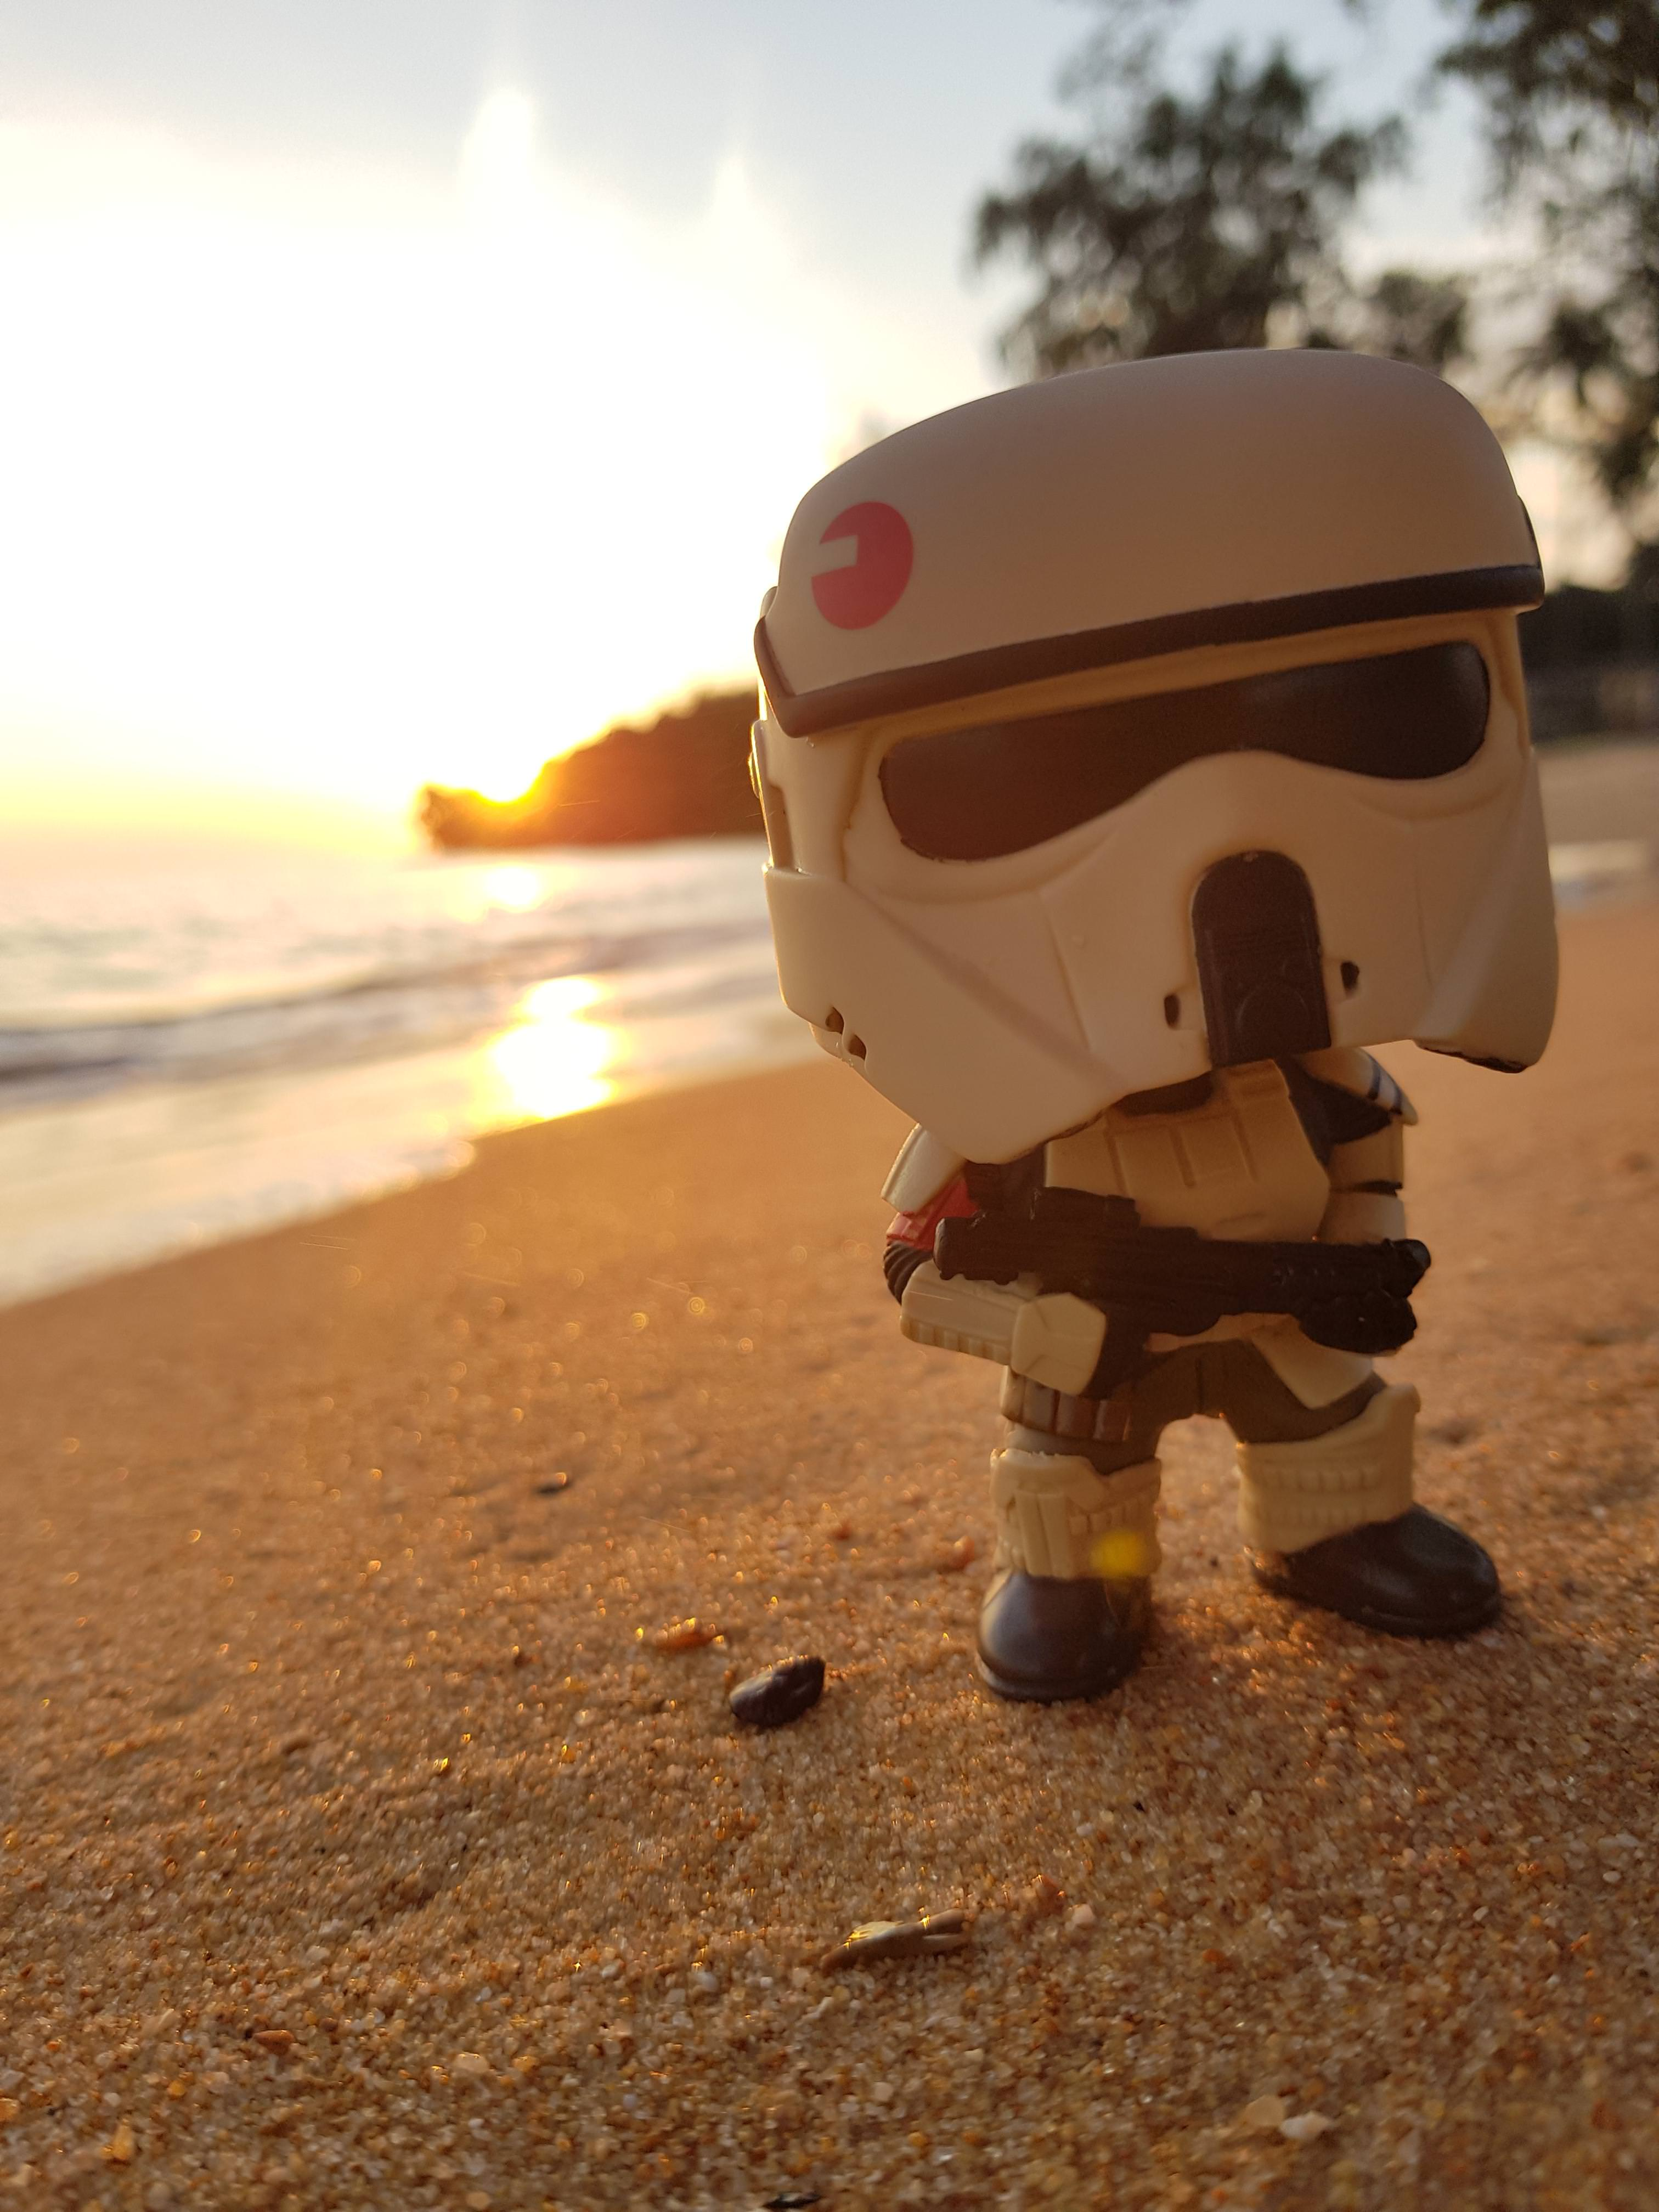 Shoretrooper on patrol